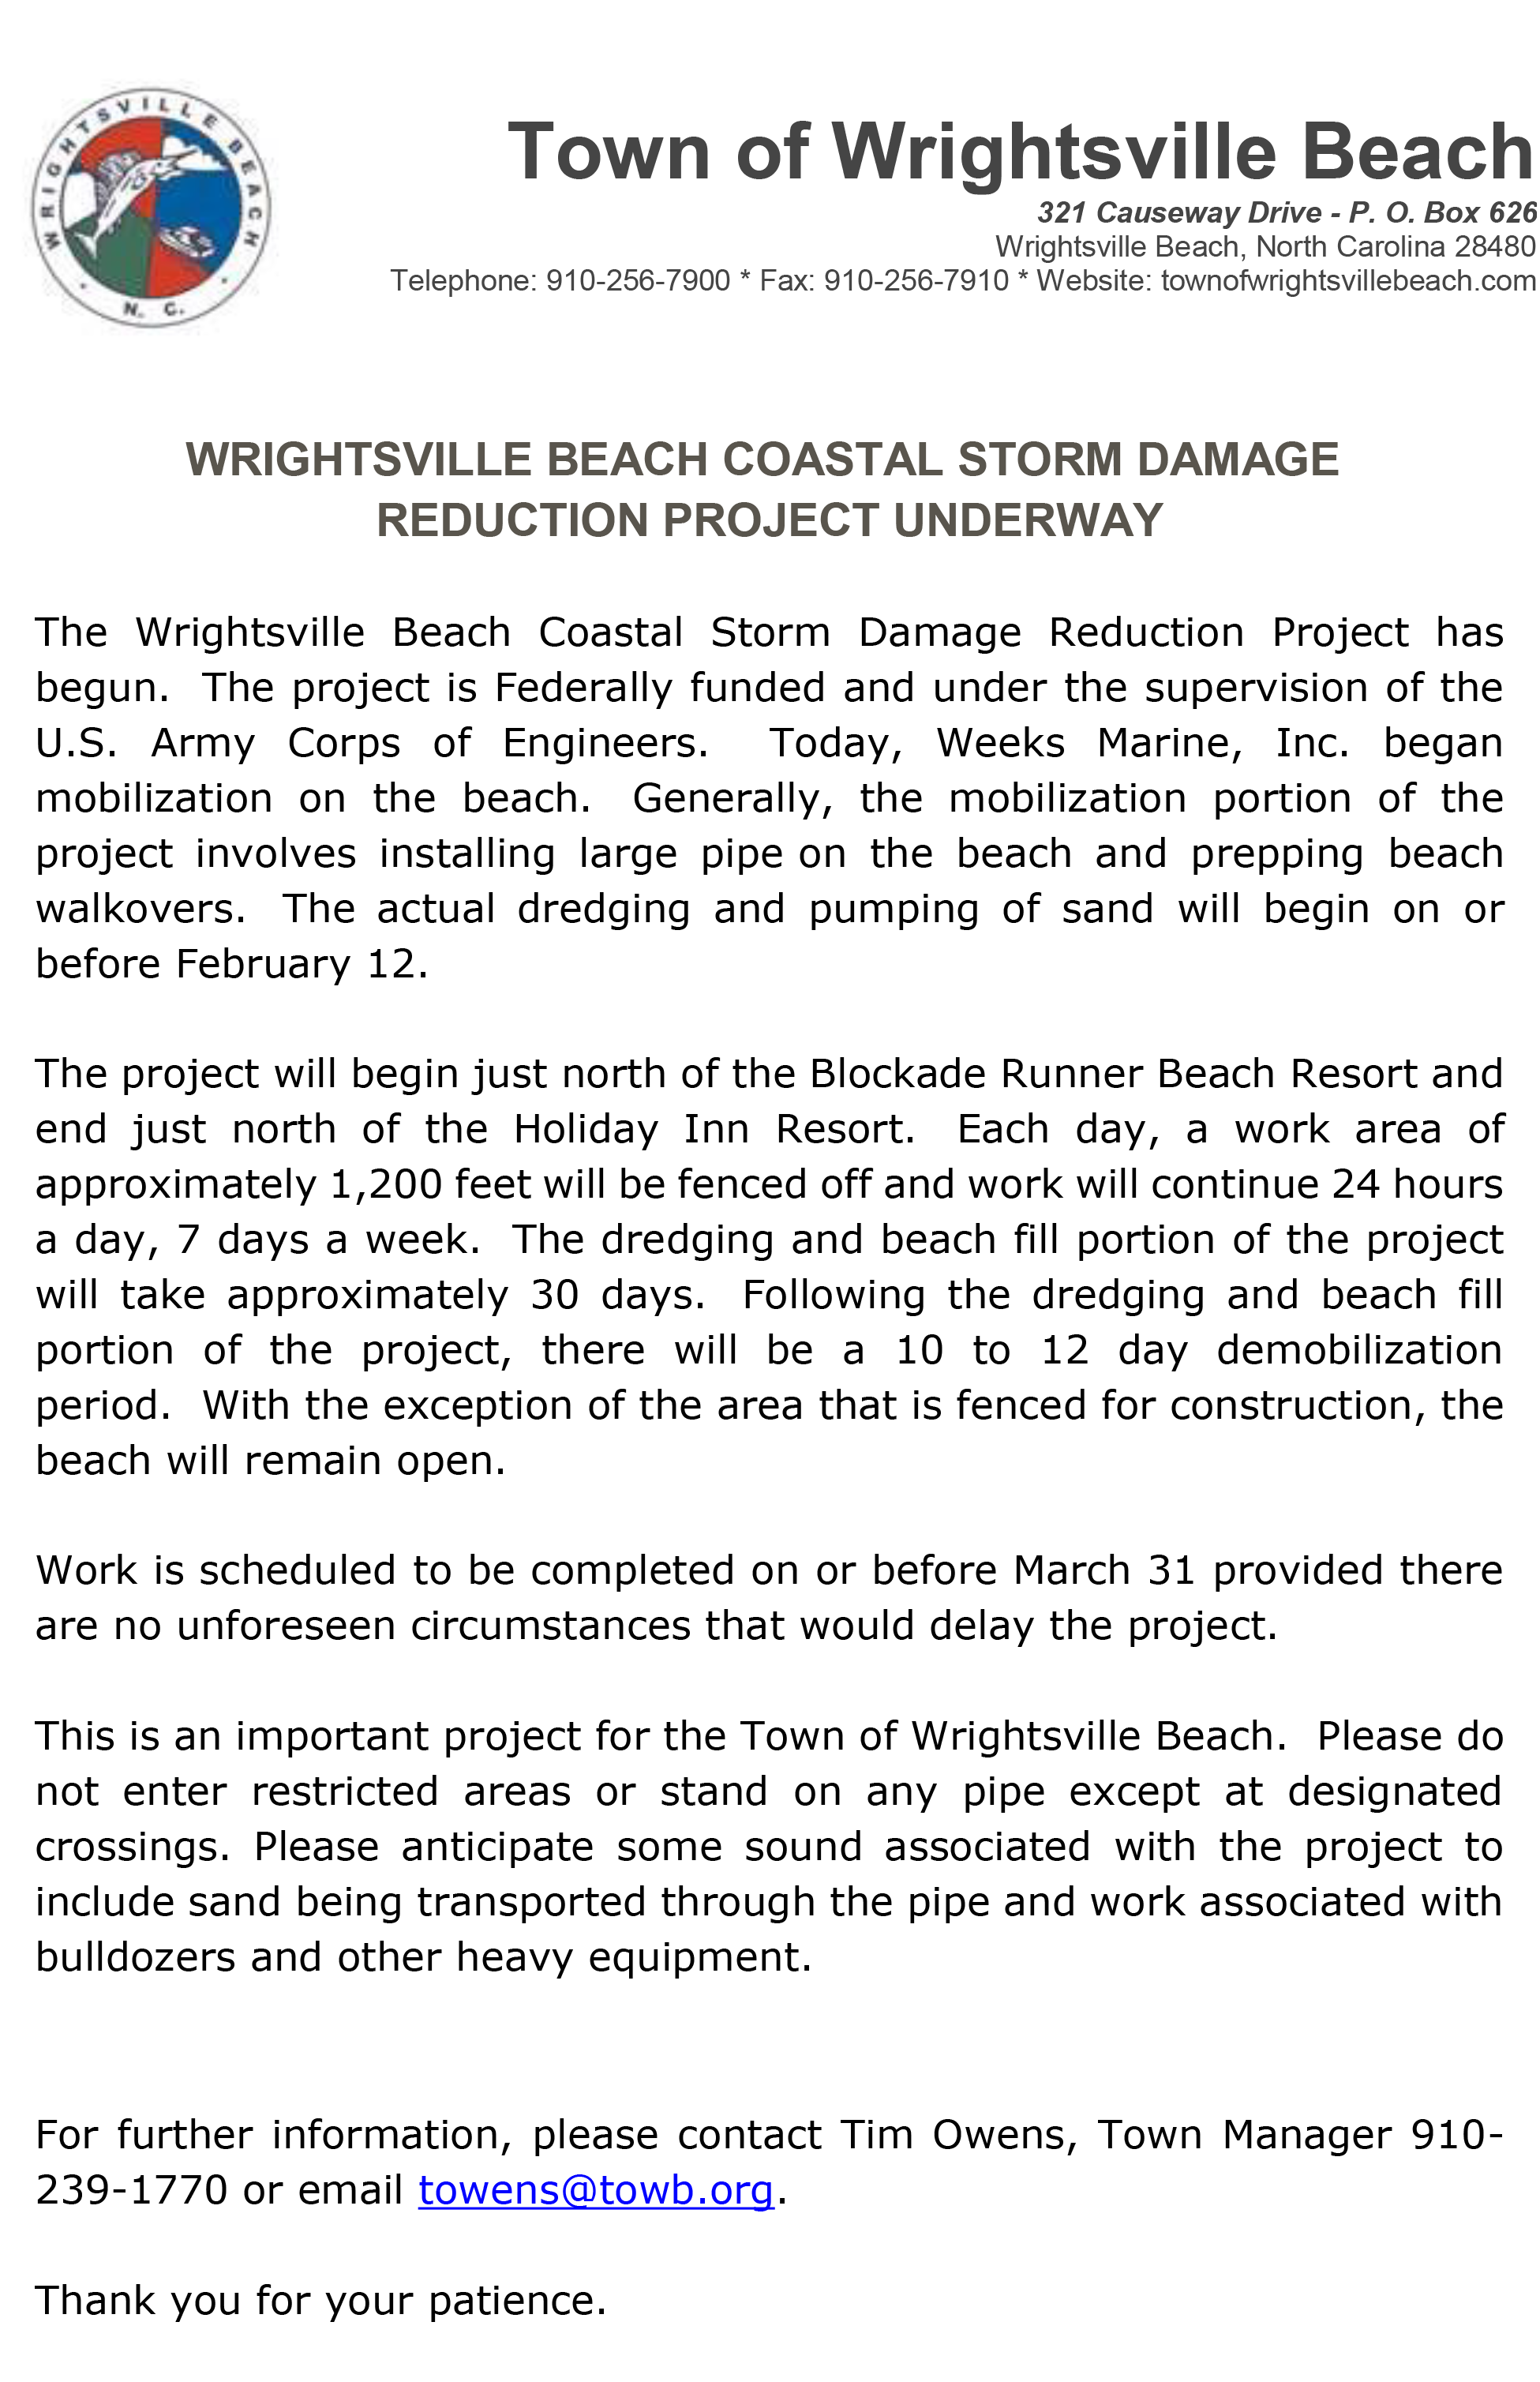 Town of Wrightsville Beach Announcement of Coastal Storm Damage Reduction Project